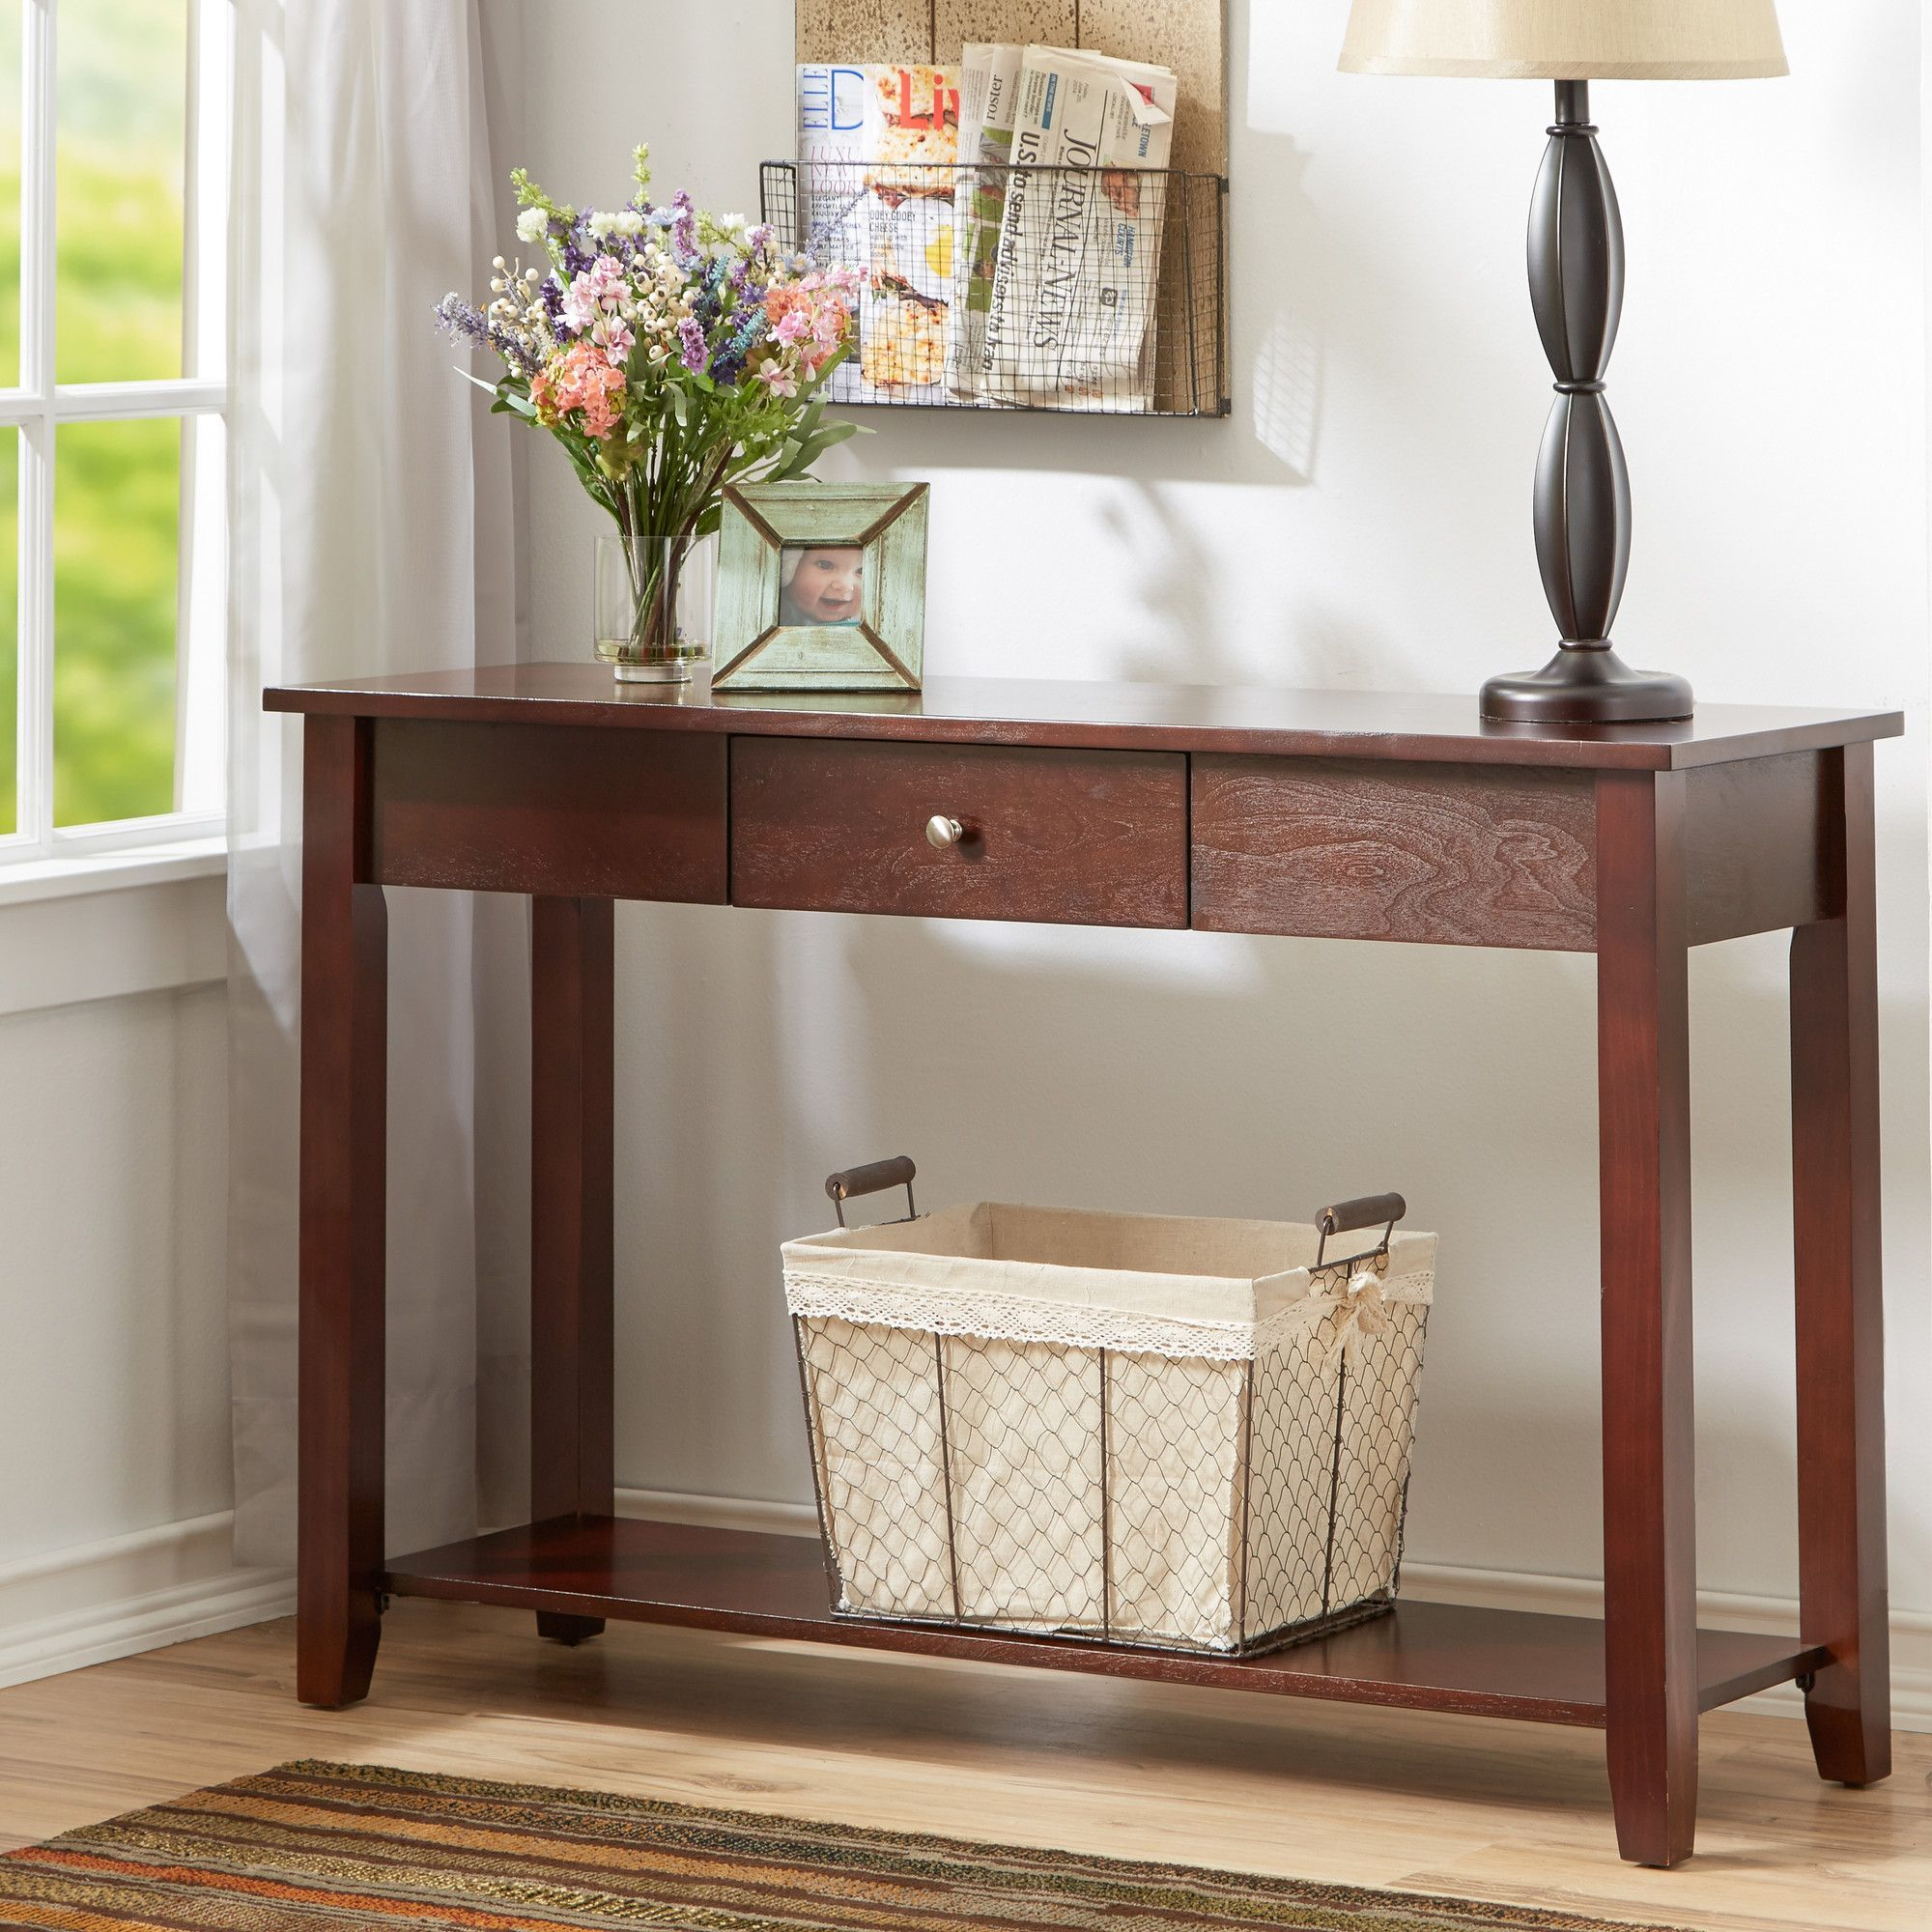 Lemont console table products pinterest console table table